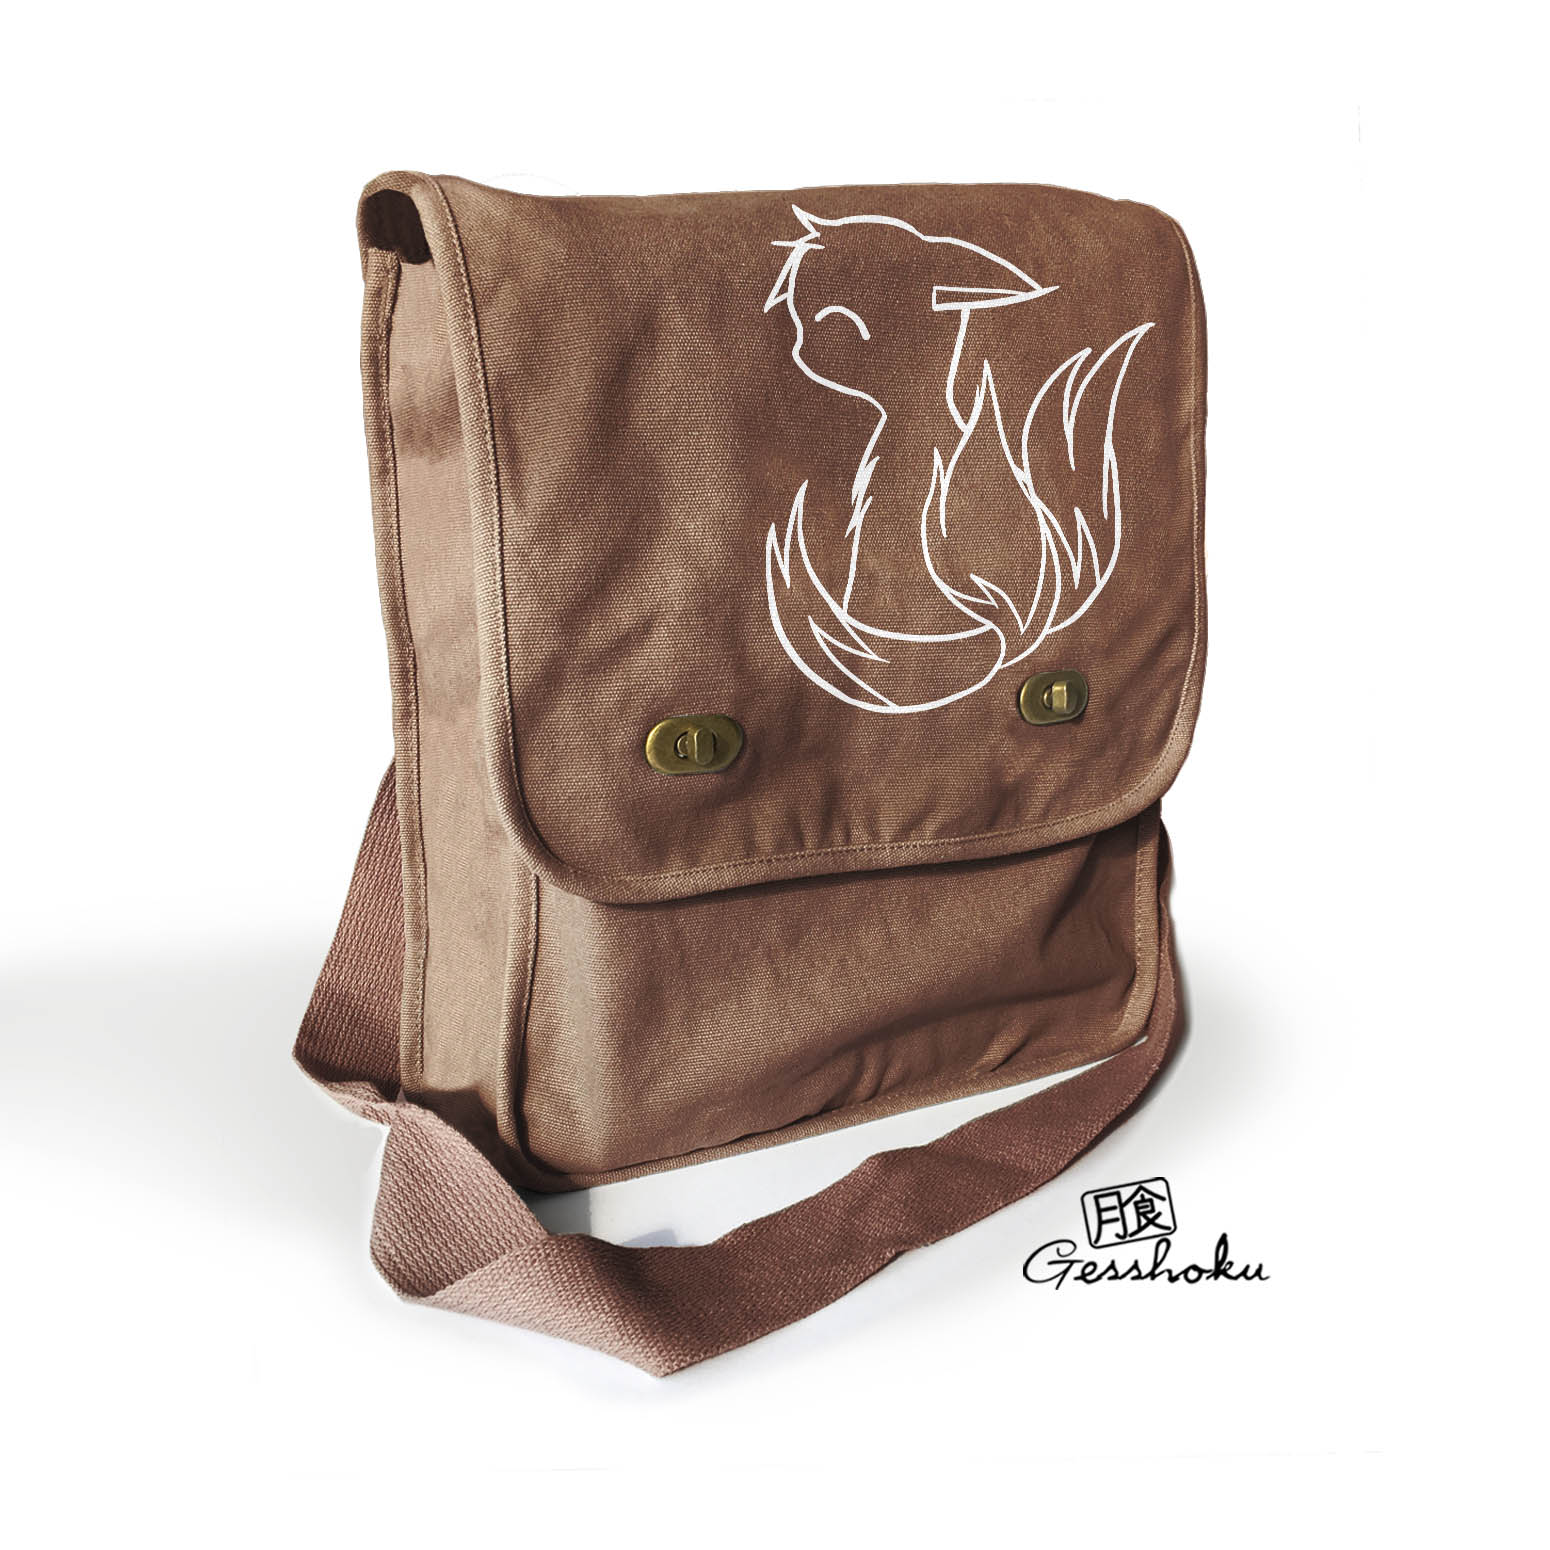 3-Tailed Baby Kitsune Field Bag - Brown